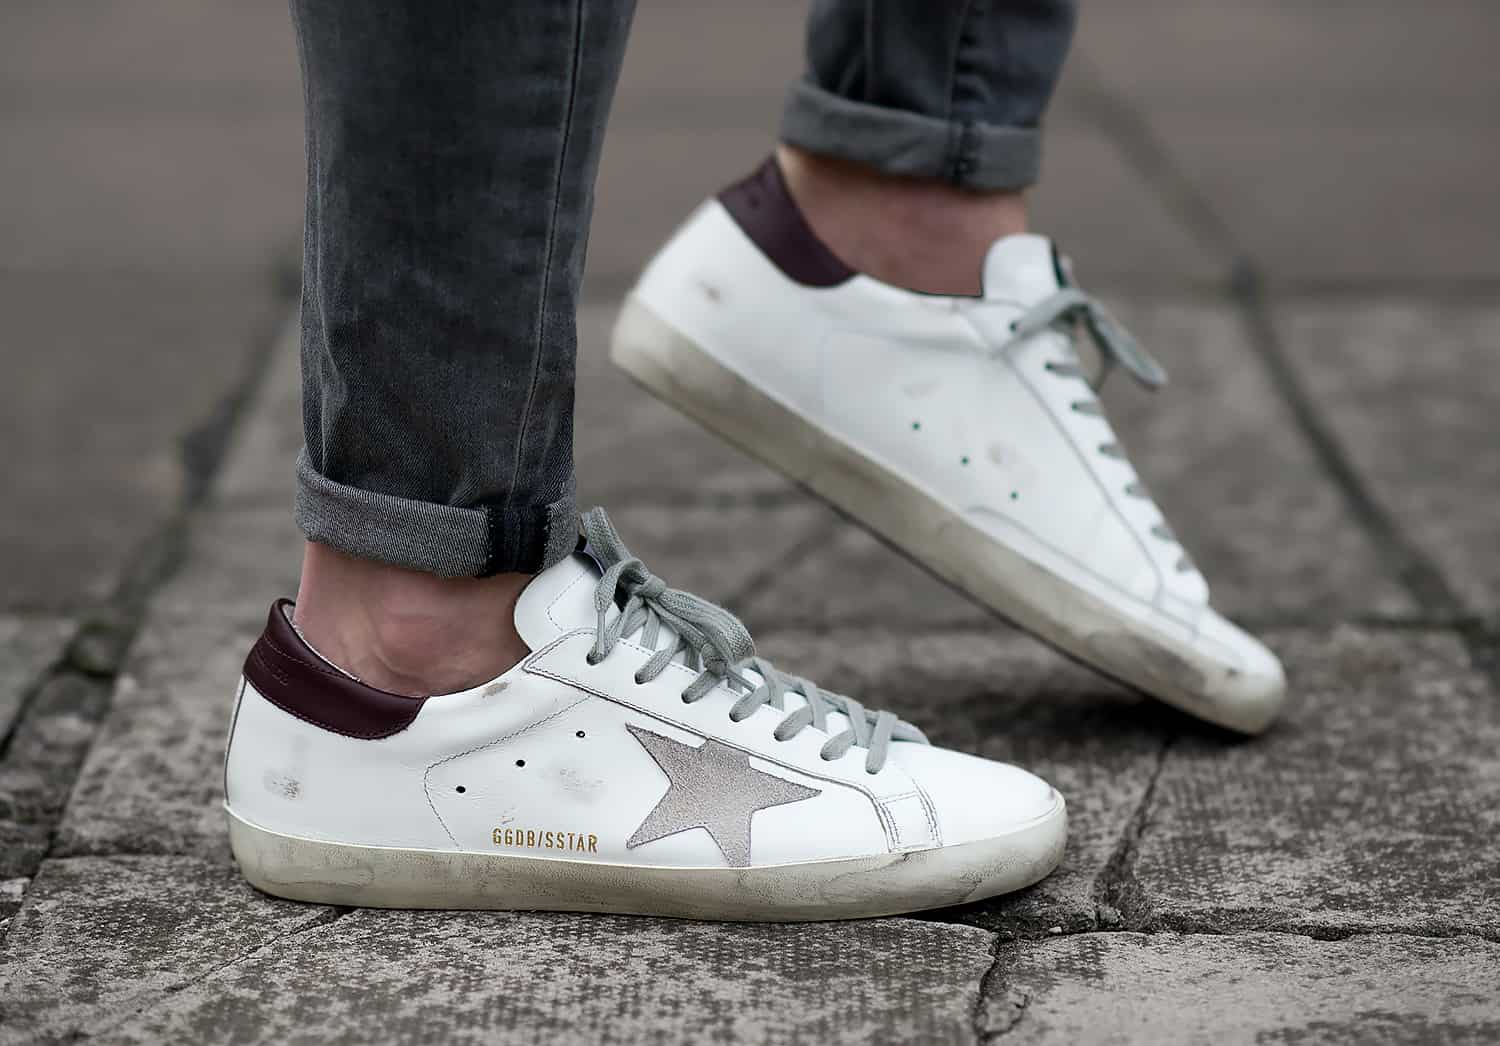 Golden Goose Sneakers Fake VS Real Guide